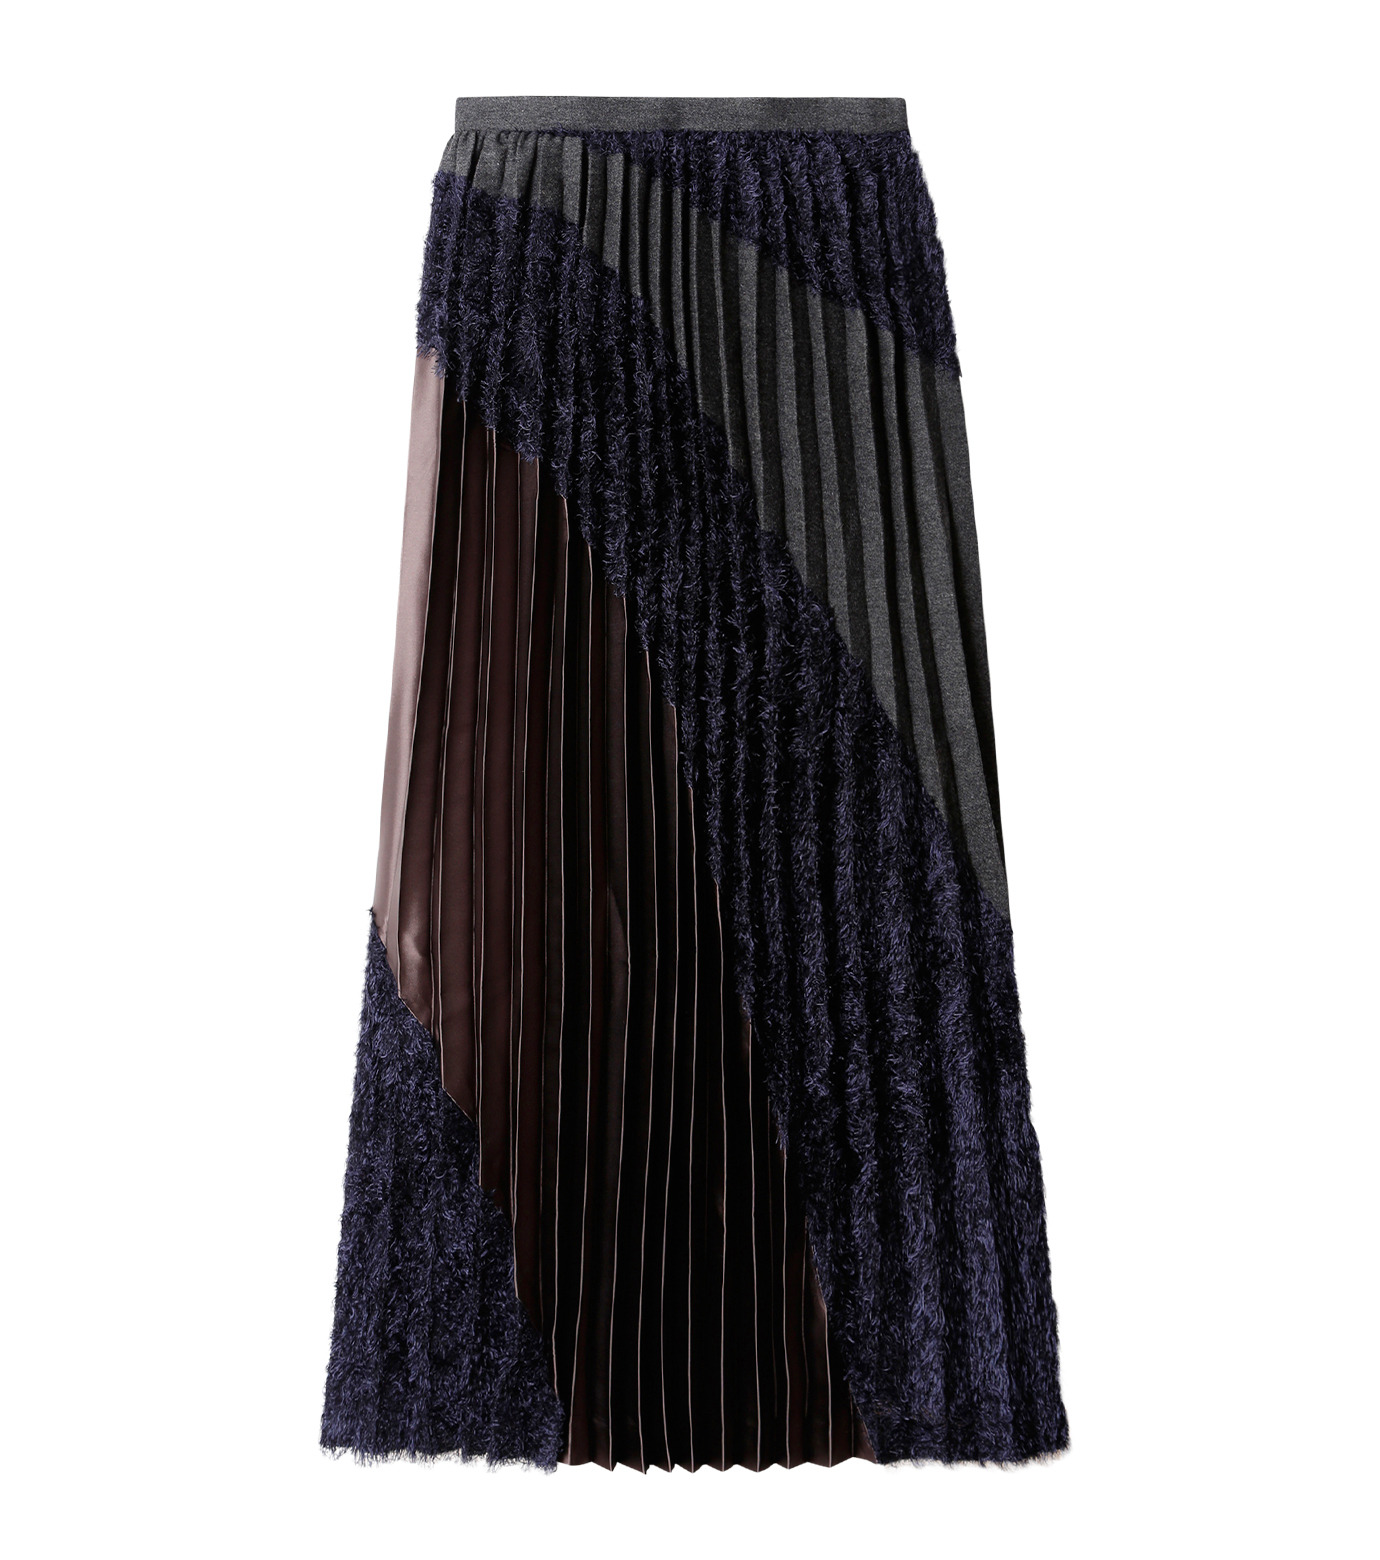 KOLOR(カラー)のLong Pleated Skirt Mixed Jacquard-NAVY(スカート/skirt)-16WCL-S03129-93 拡大詳細画像4